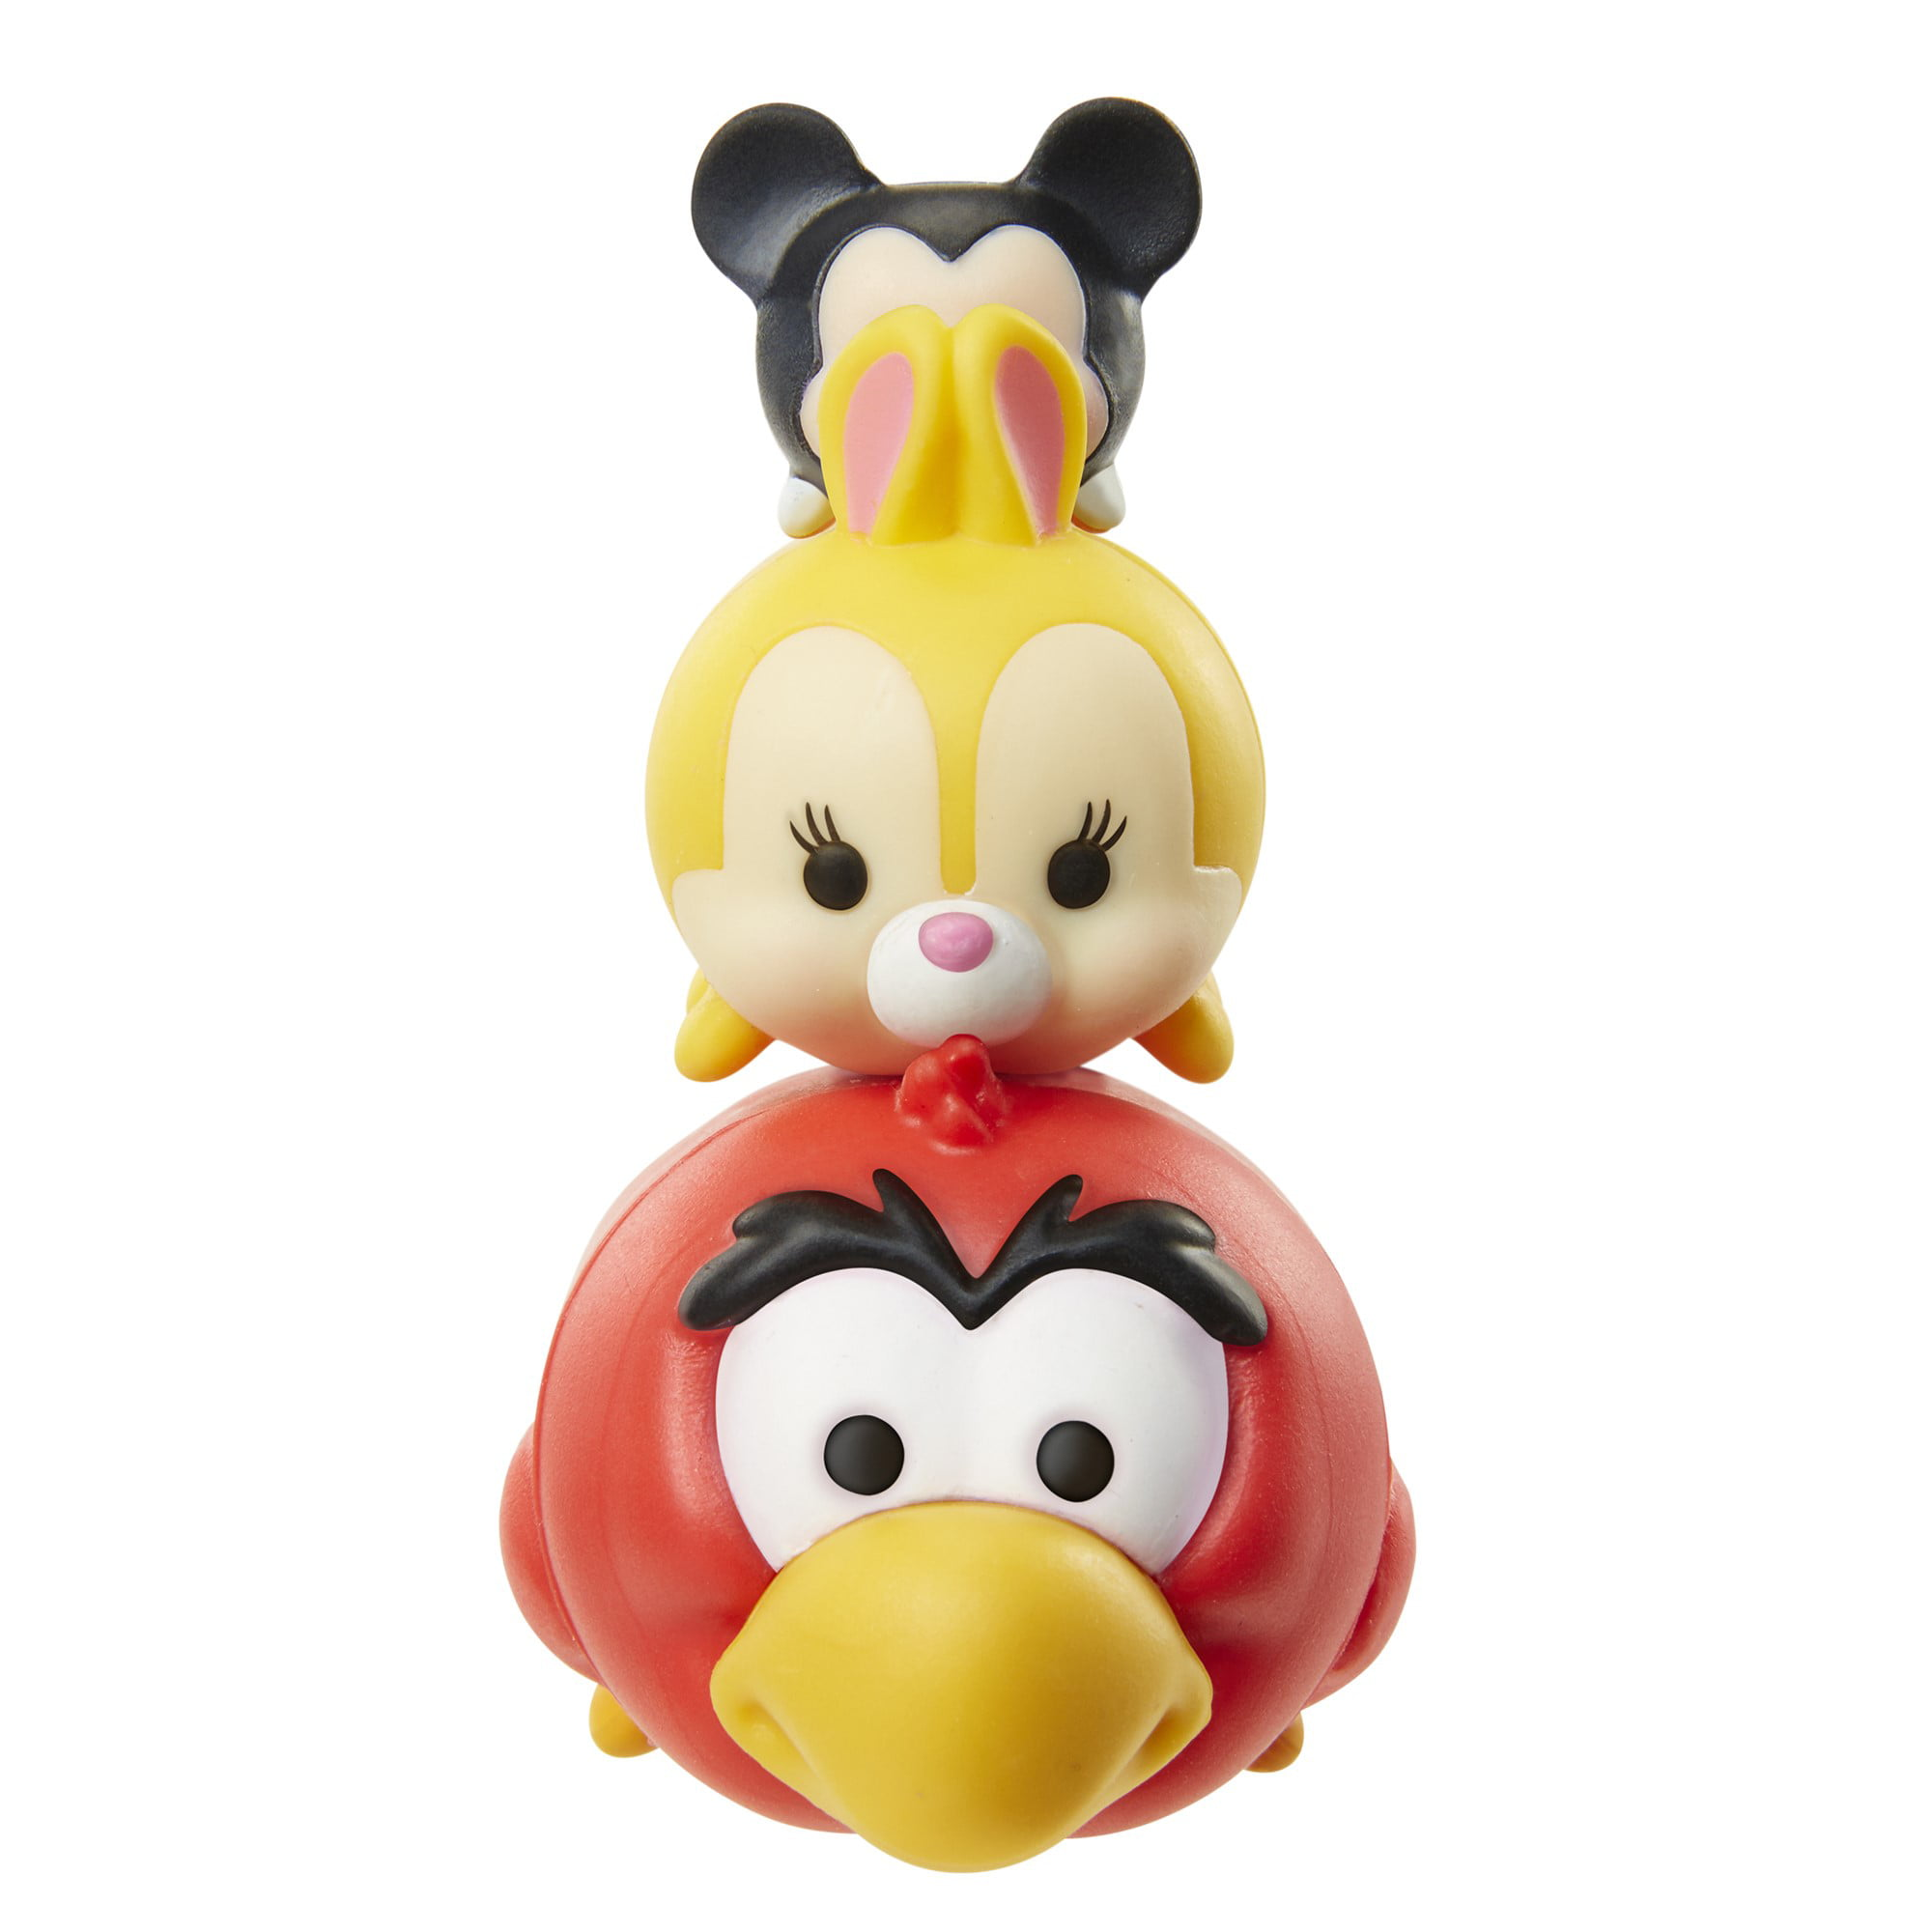 Coloring pages tsum tsum - Tsum Tsum 3 Pack Figures Iago Miss Bunny Mickey